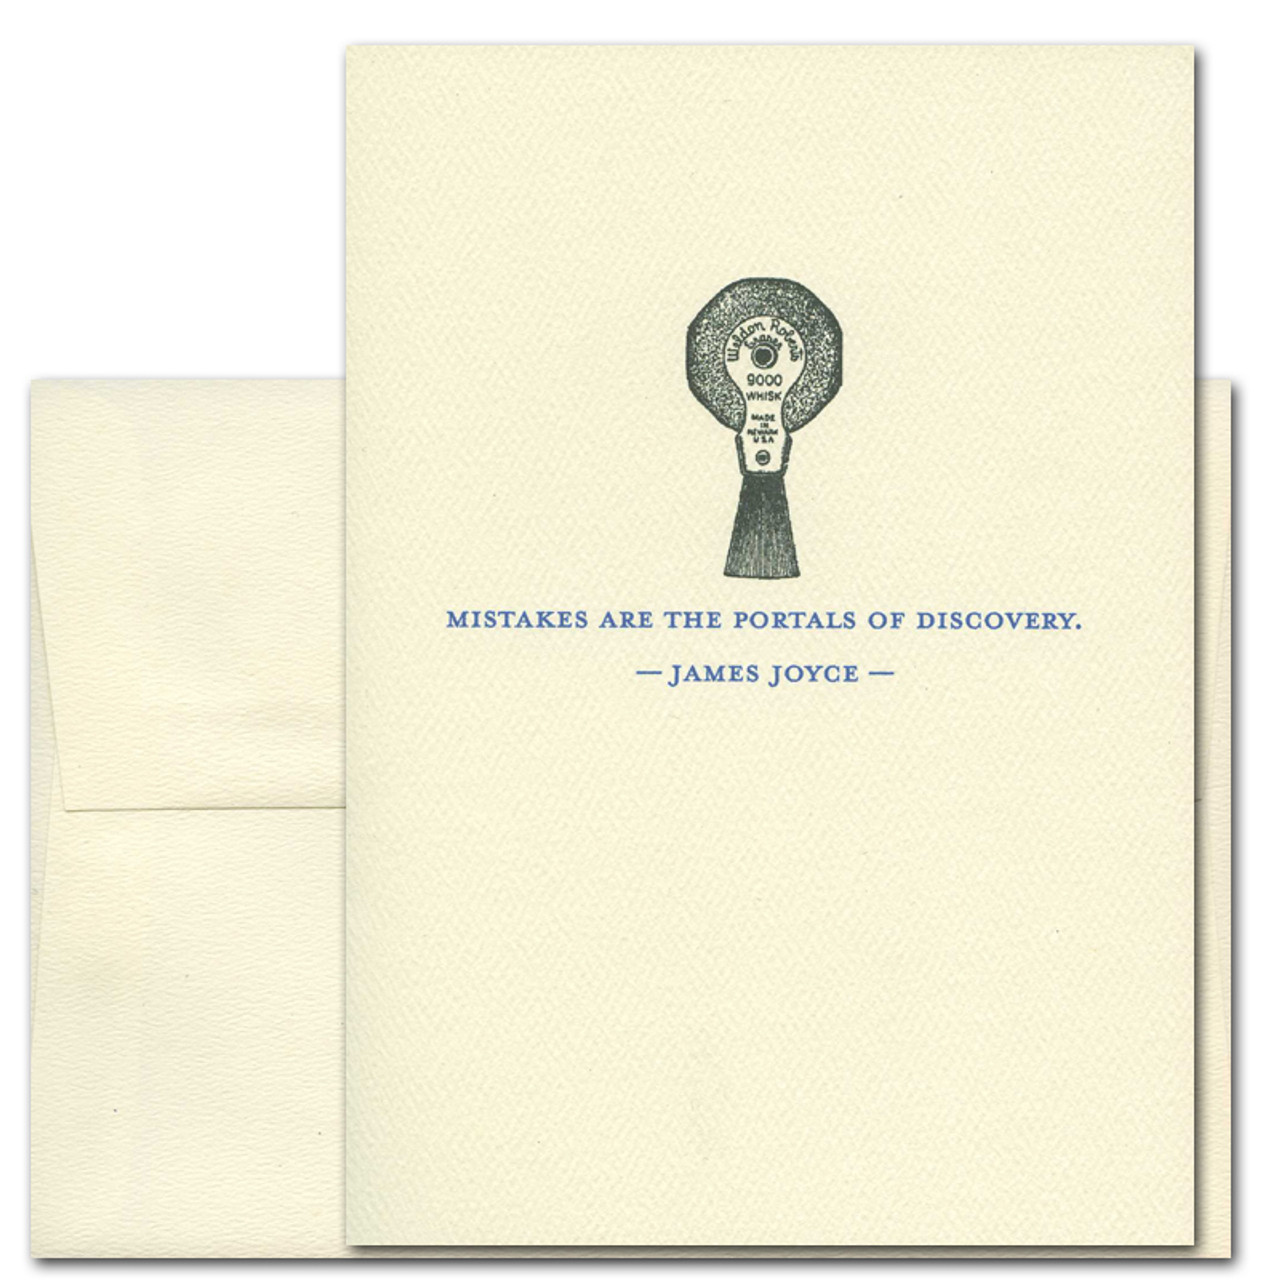 """Quotation Card """" Mistakes: Joyce"""" Cover shows old fashioned typewriter eraser with a quote by James Joyce that reads: """"Mistakes are the portals of discovery"""""""